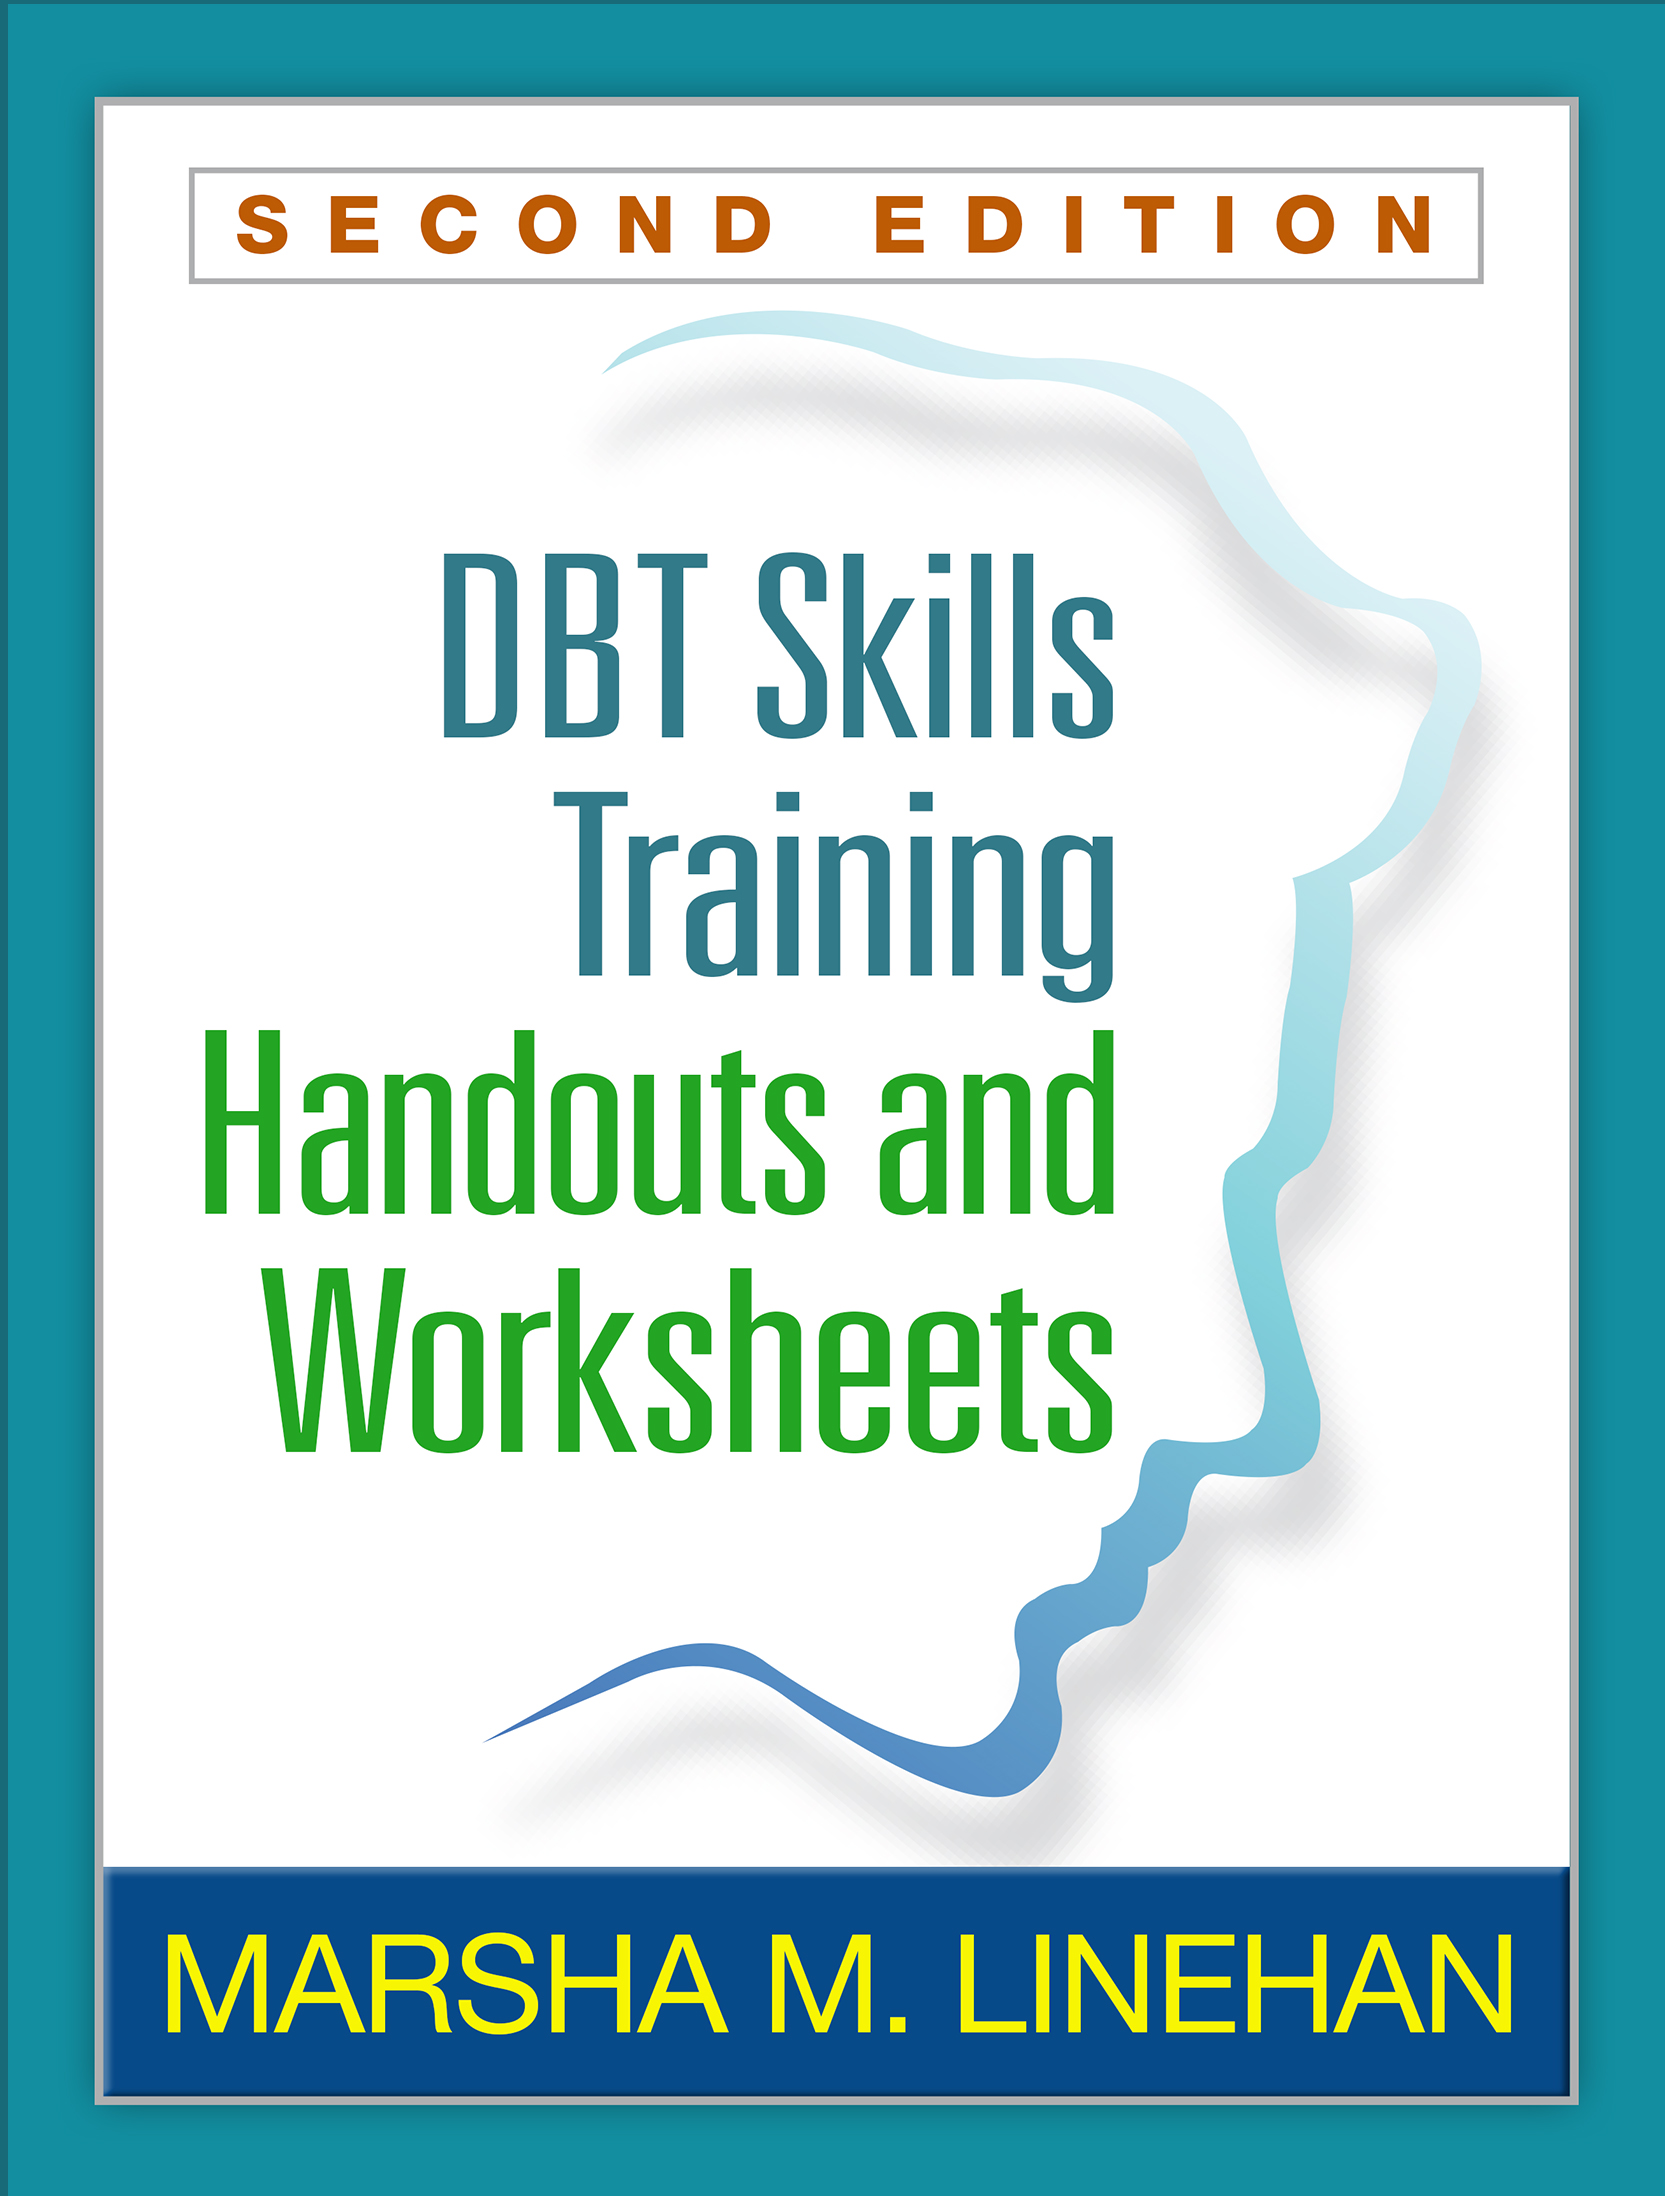 Dbt Treatment Developer Dr Marsha Linehan Releases New Edition Of Bestselling Skills Manual